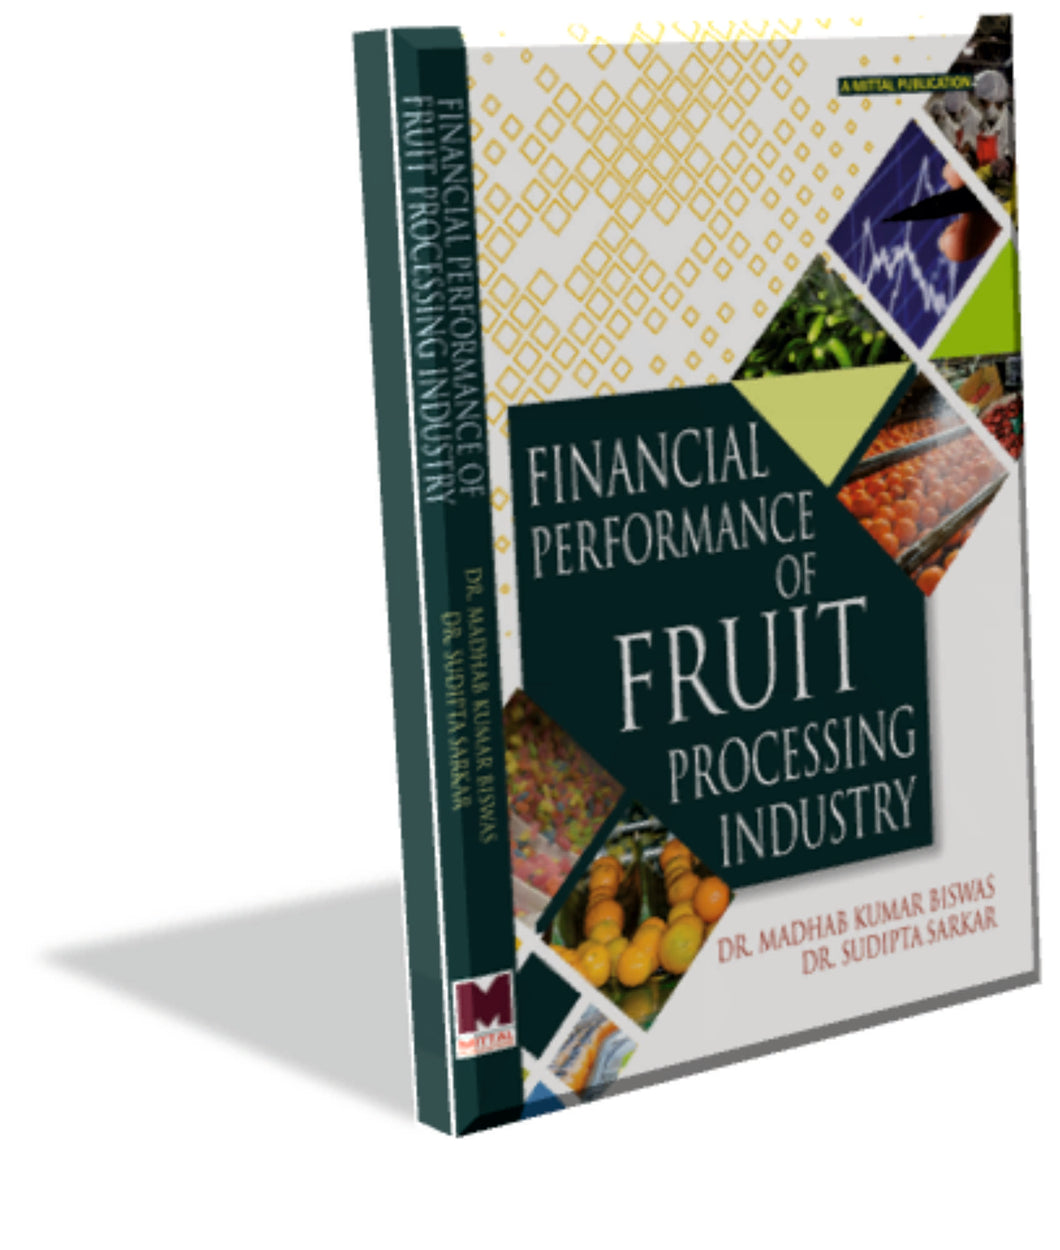 Financial Performance of Fruit Processing Industry